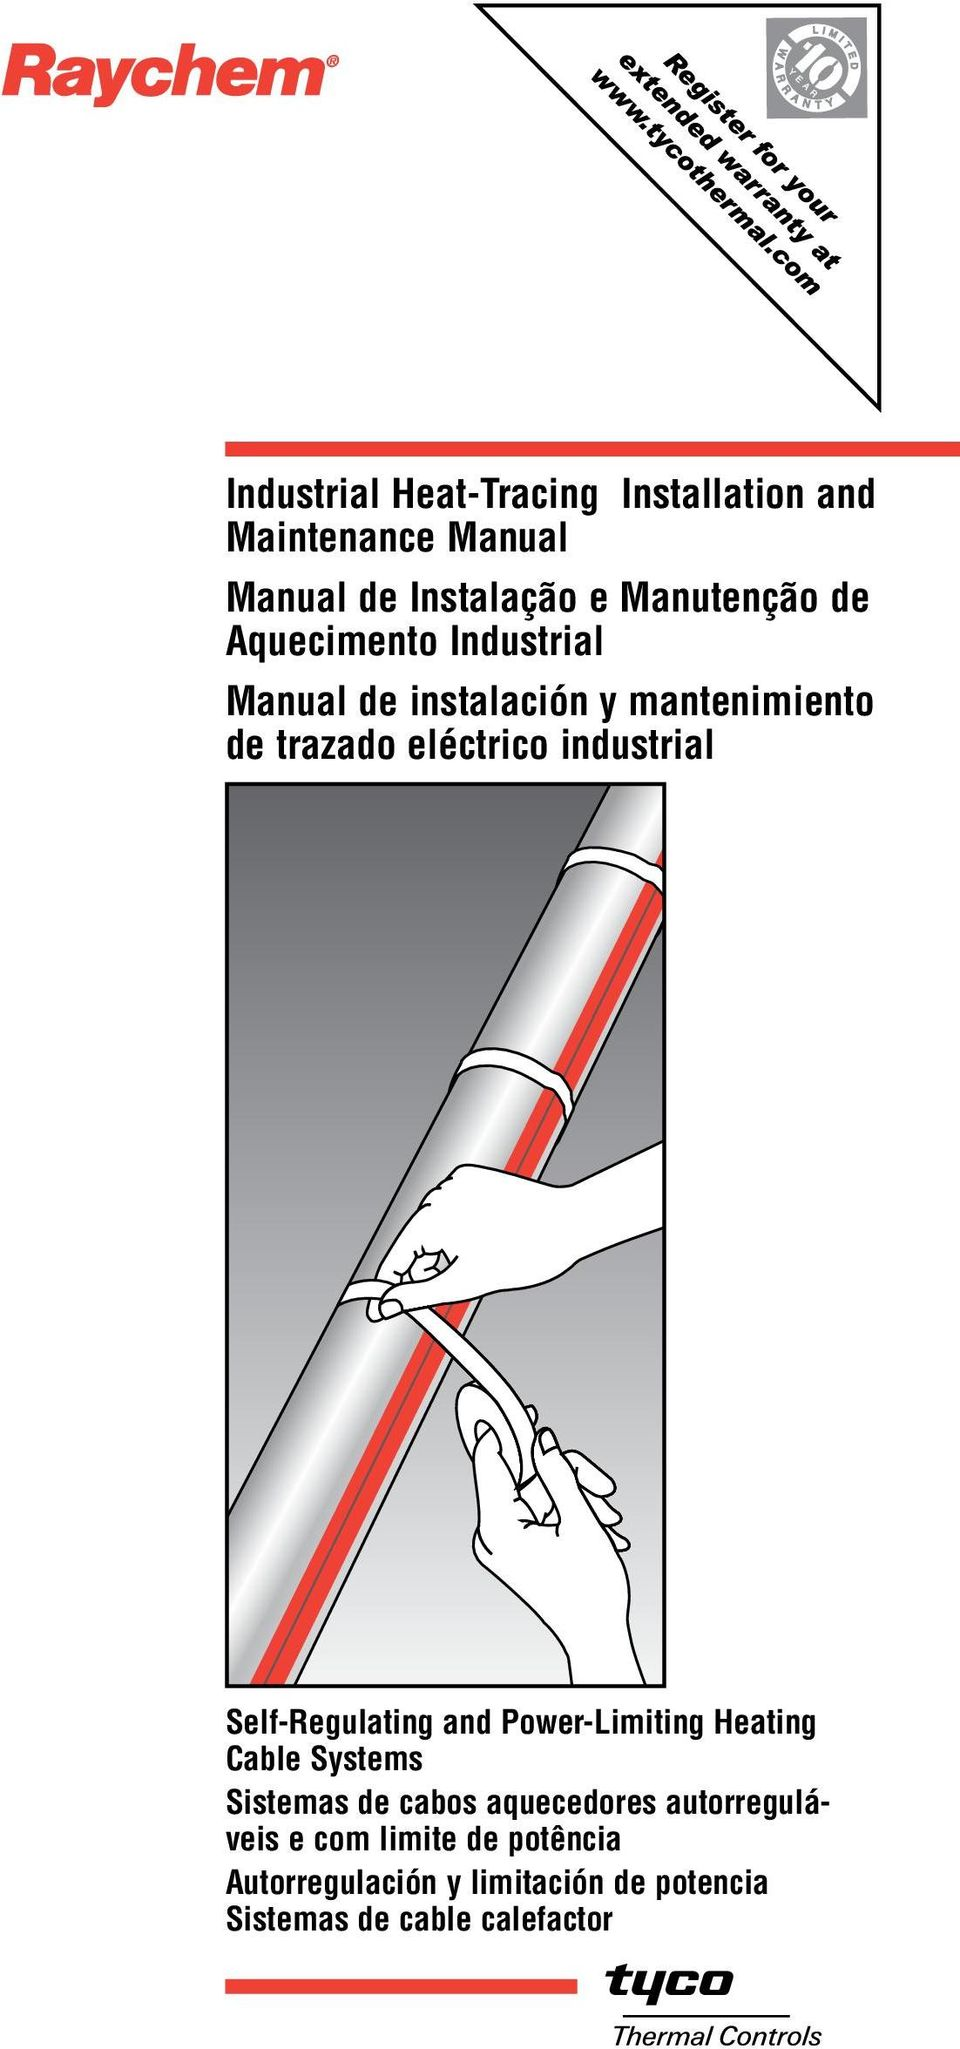 Self-Regulating and Power-Limiting Heating Cable Systems Sistemas de cabos aquecedores